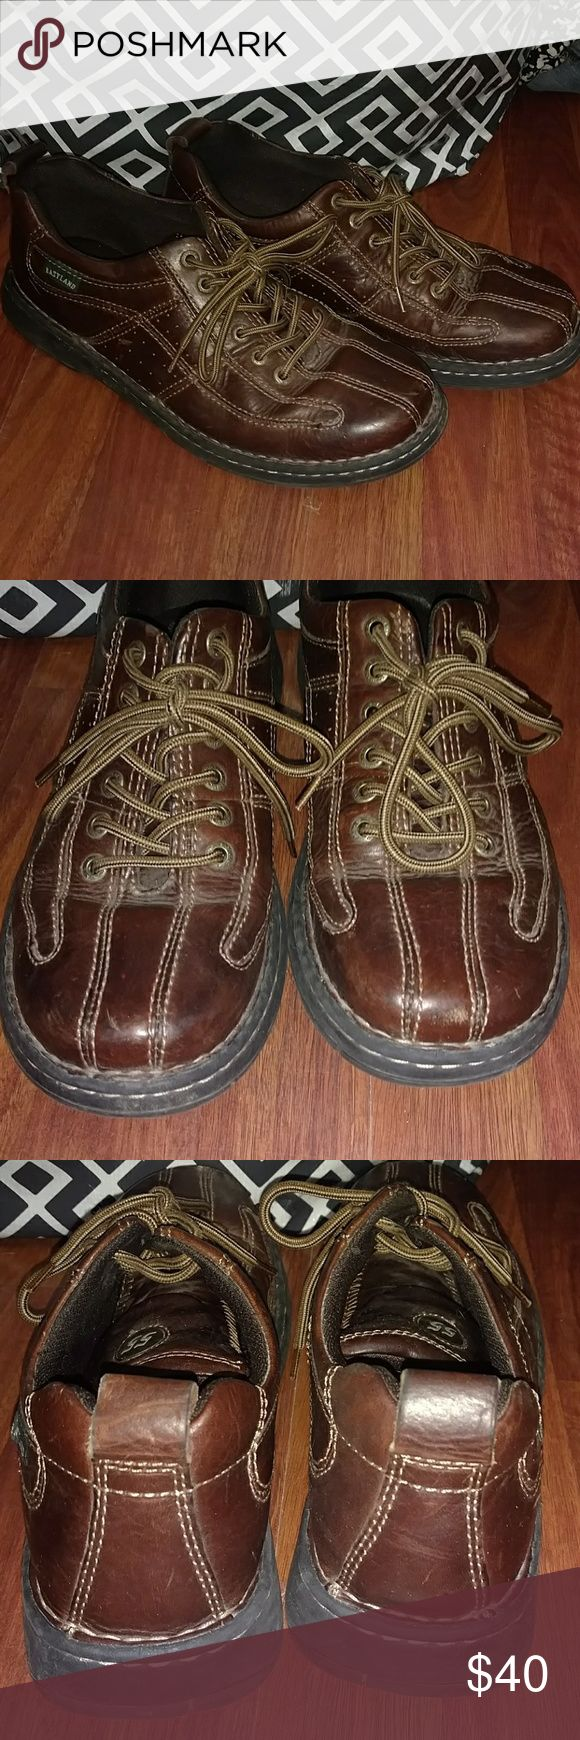 Men's Eastland 55 Brown Leather Shoes Very nice condition Genuine Non-Marking Rubber. Leather Upper Balance. Eastland Shoes Oxfords & Derbys